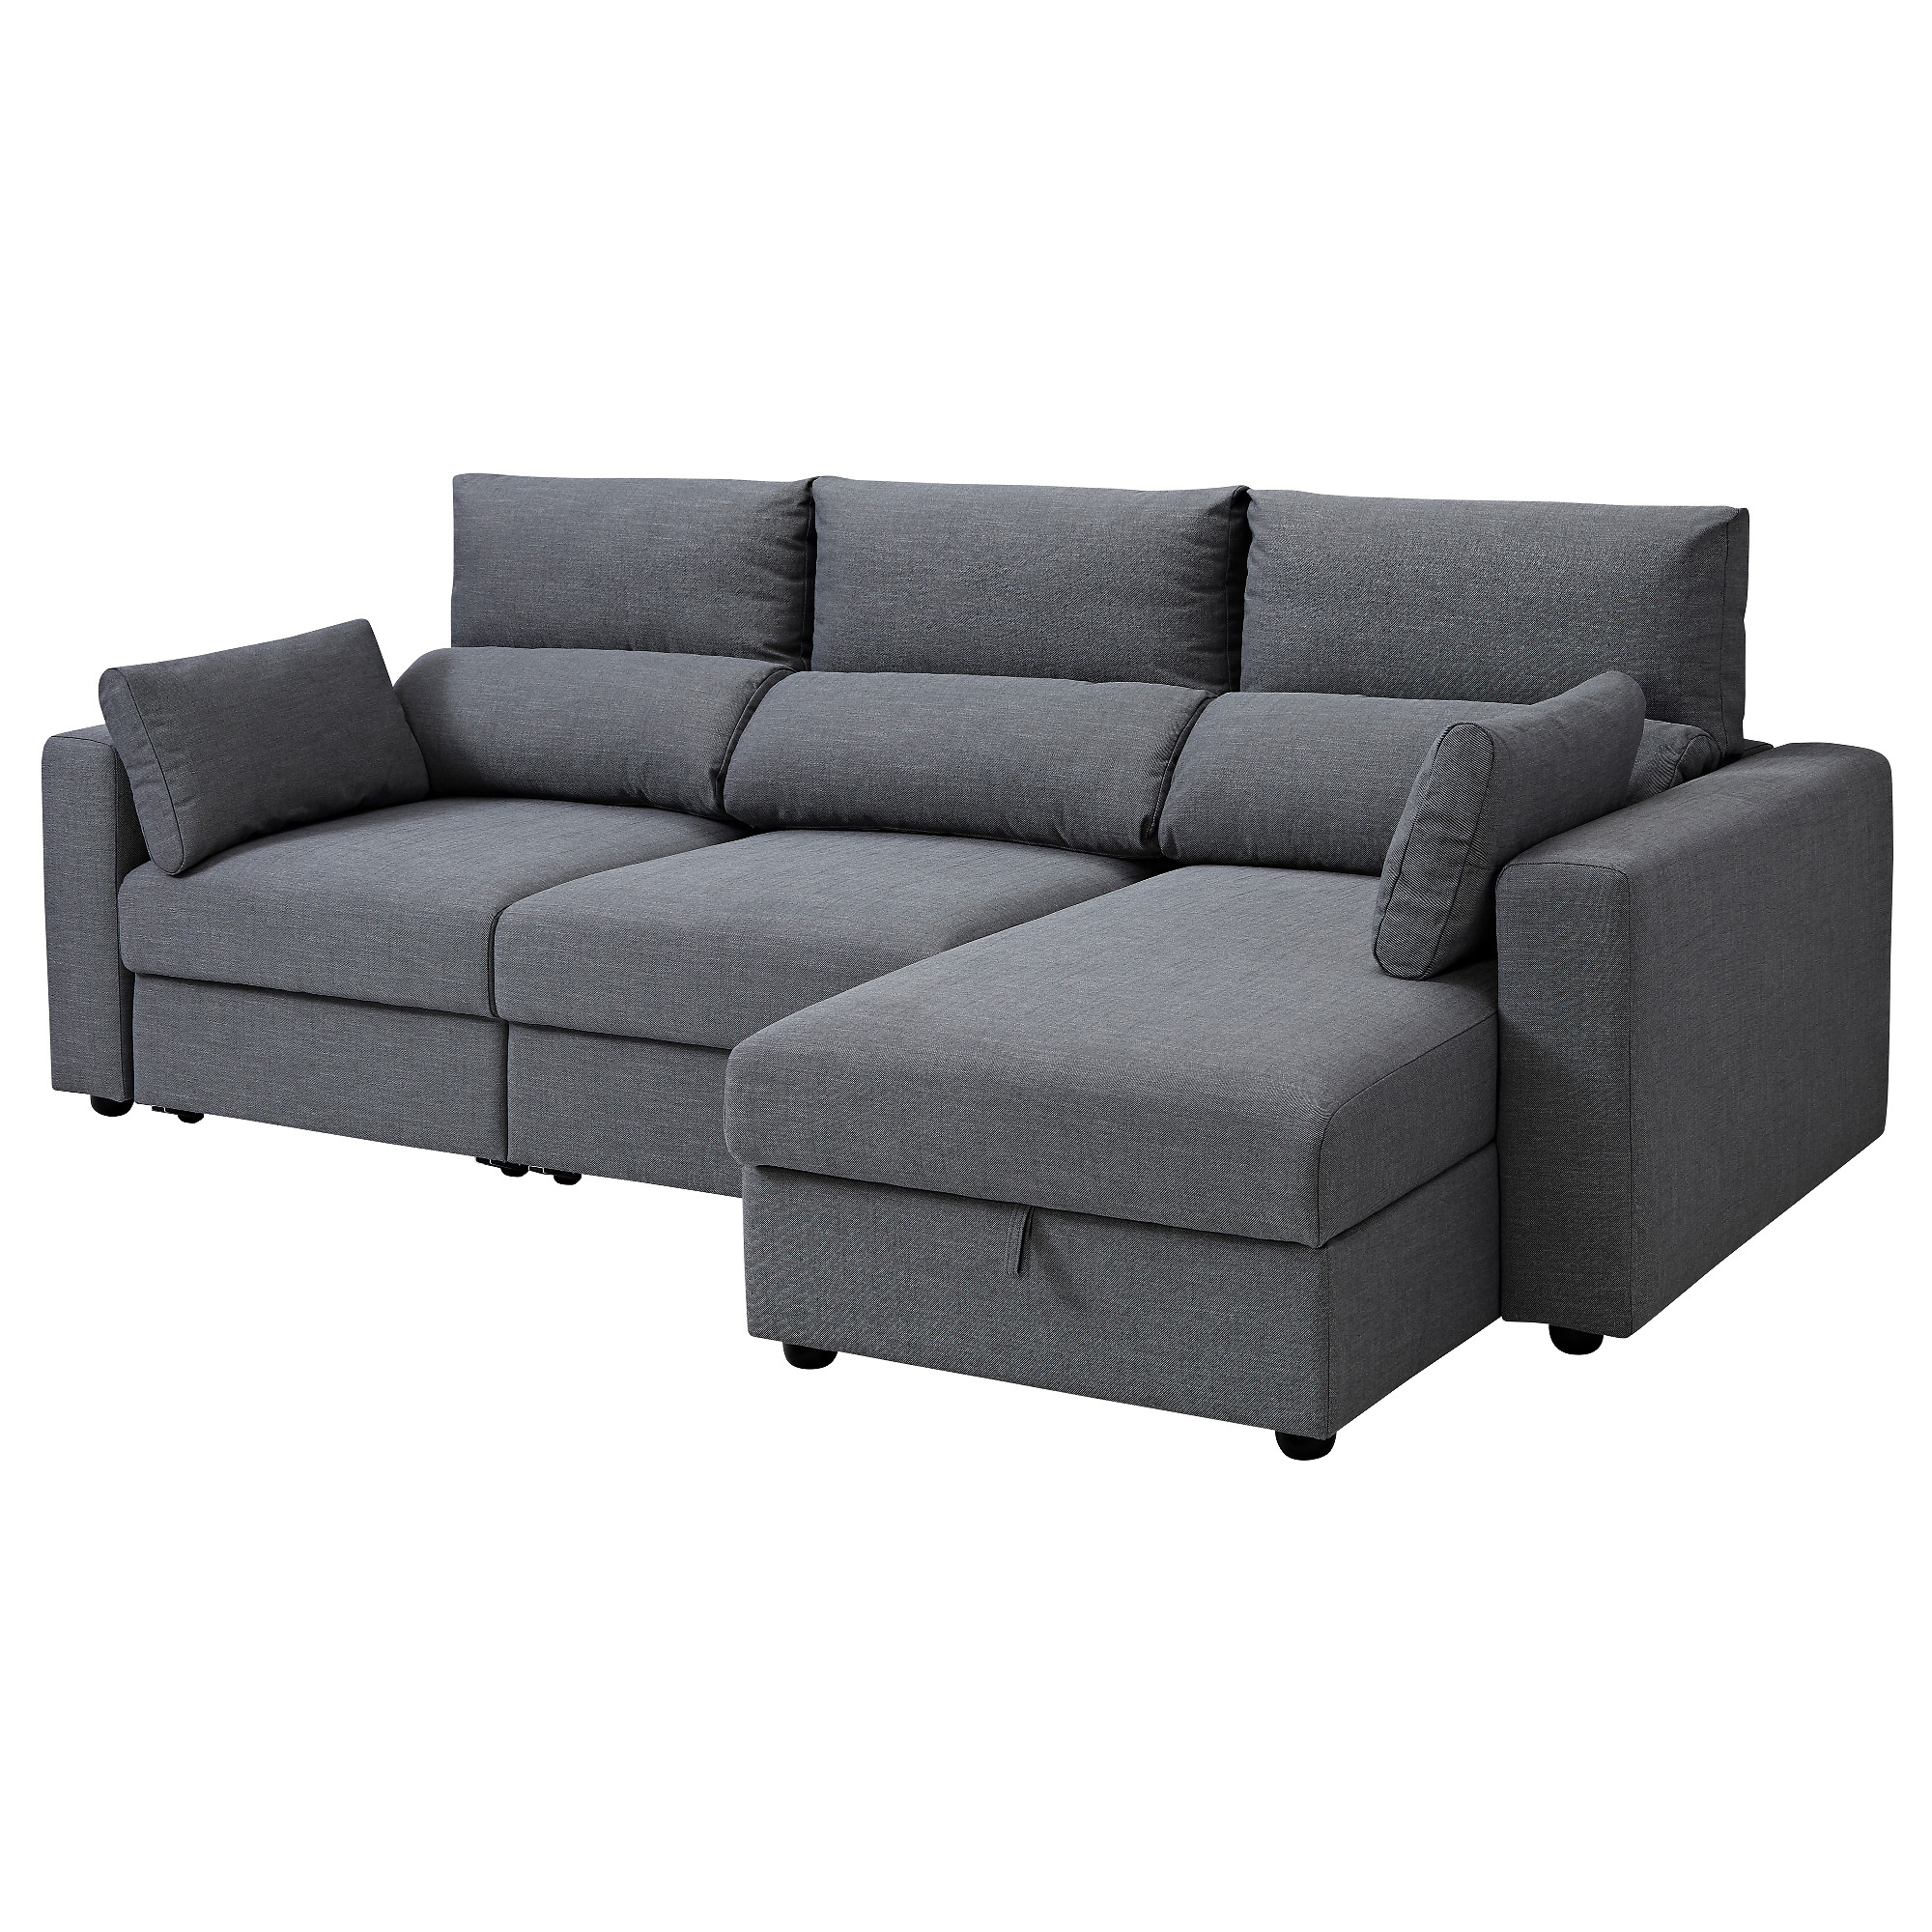 ESKILSTUNA 3-seat sofa with chaise longue - IKEA